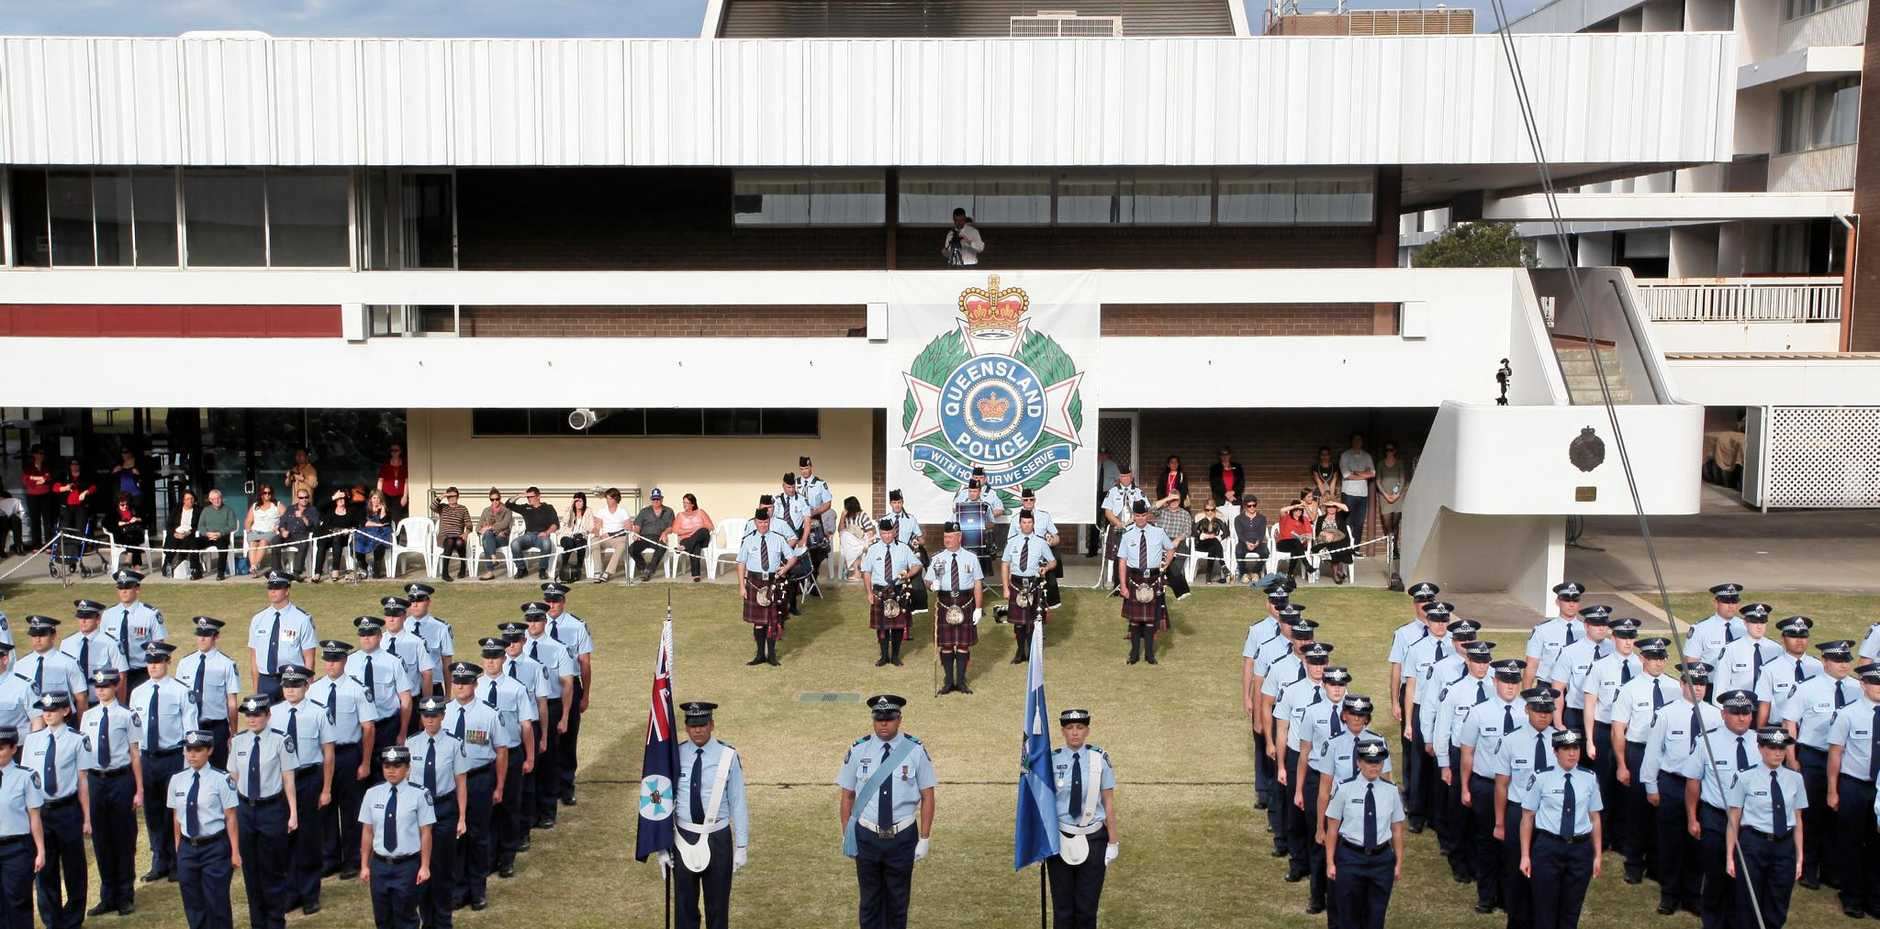 Police recruits graduating from Oxley Police Academy.